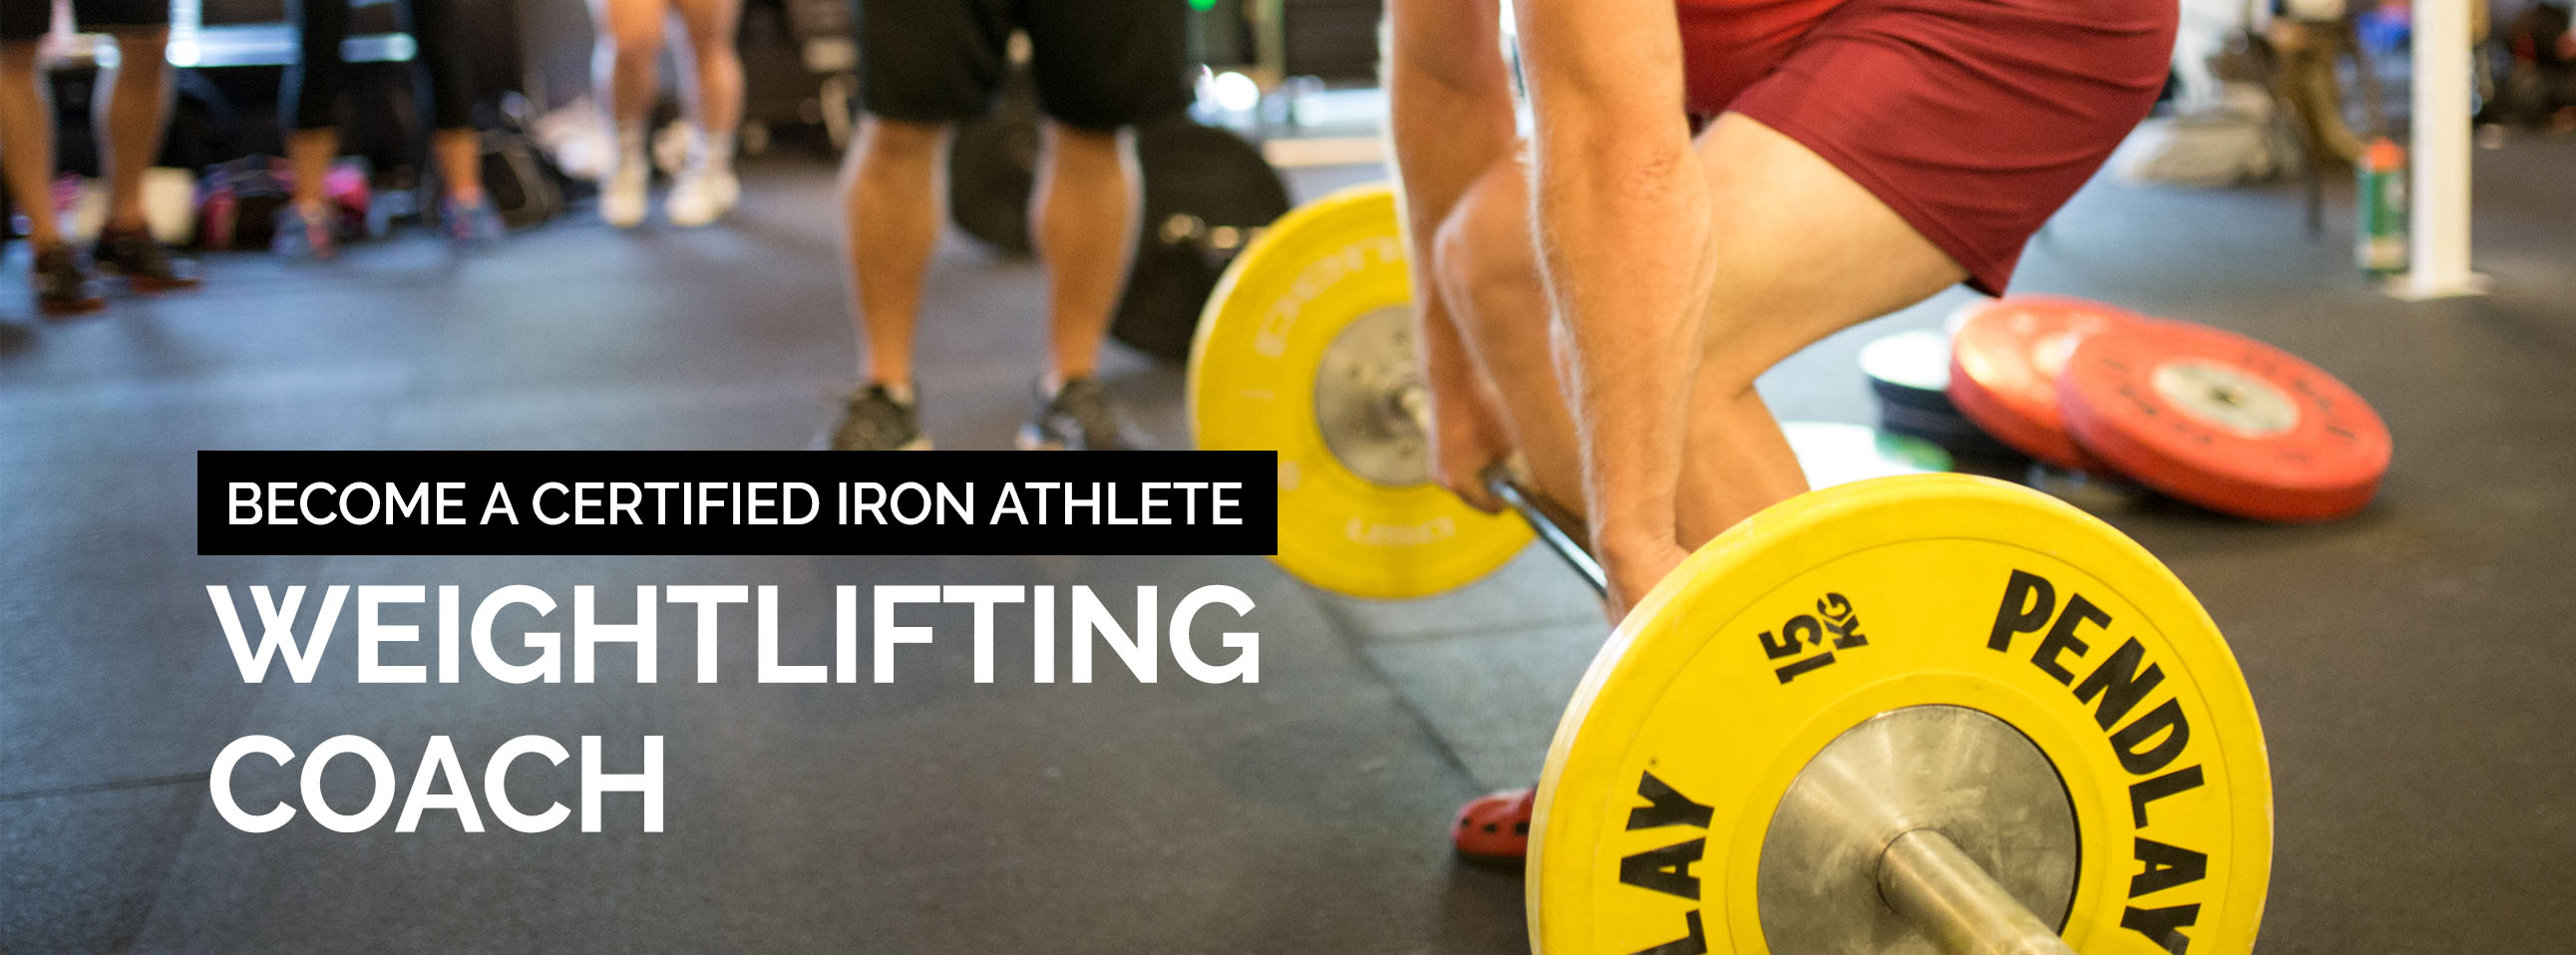 Iron Athlete Weightlifting Coach